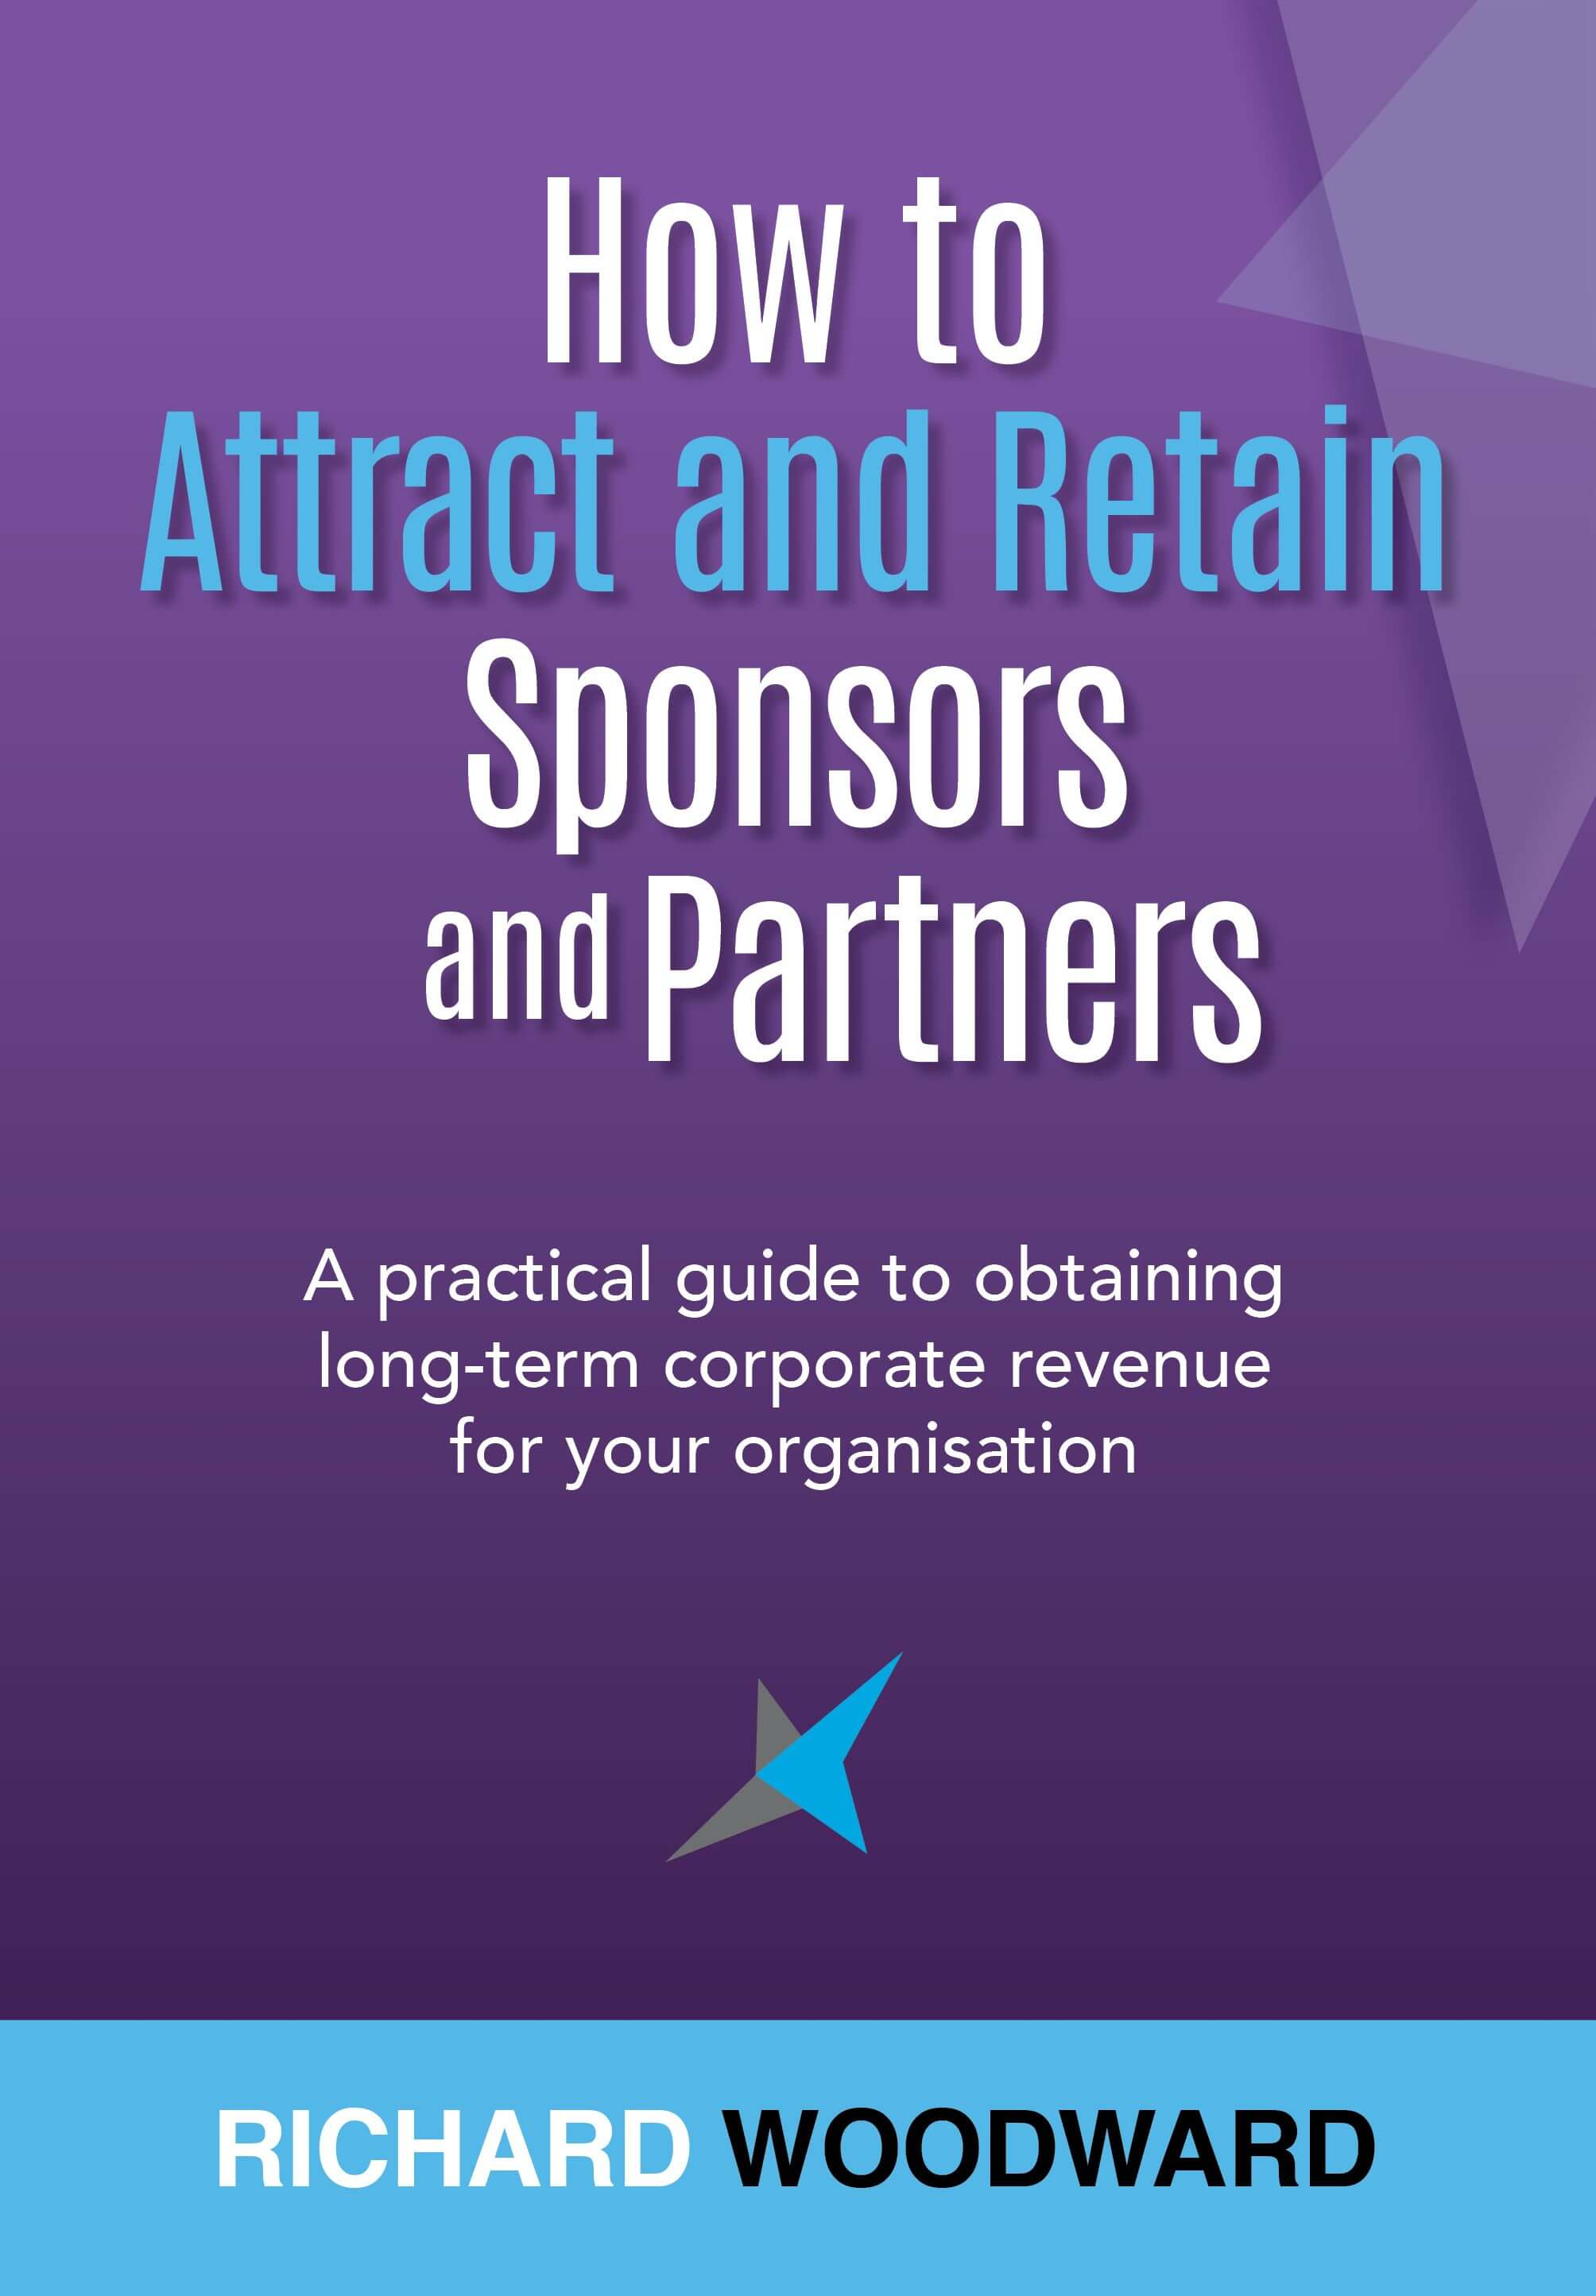 Sponsorship book Richard Woodward